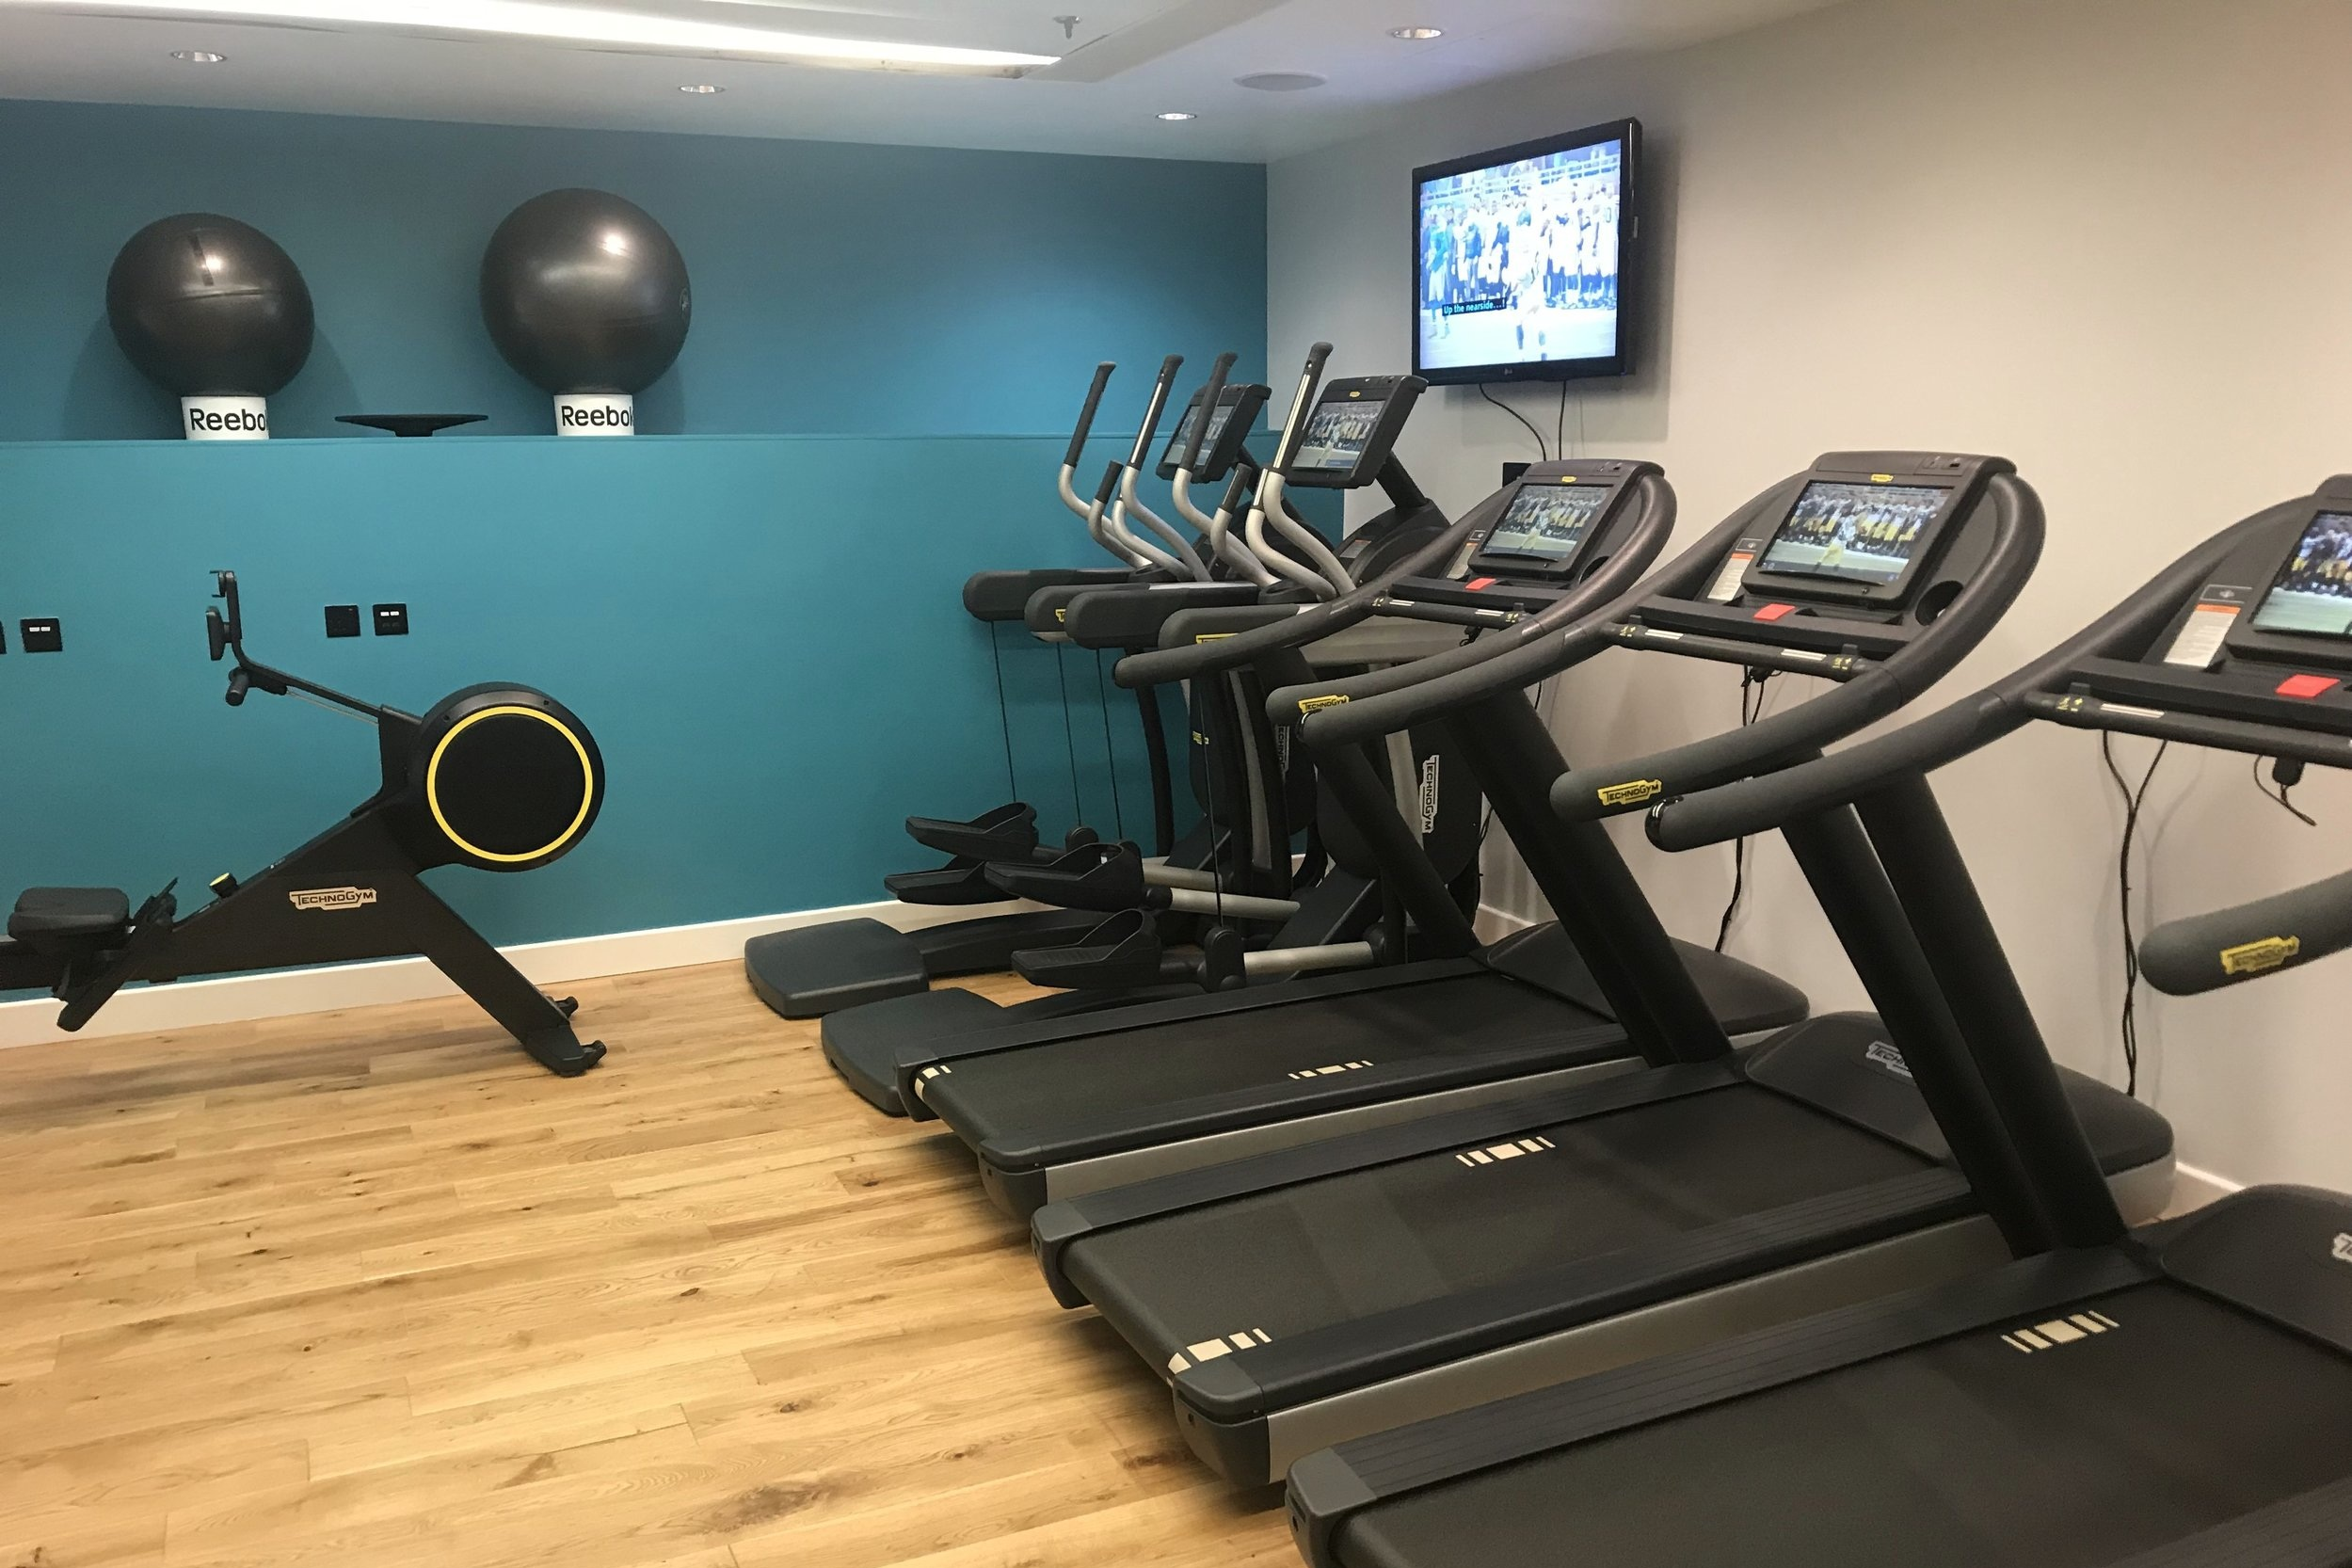 St. Pancras Renaissance Hotel London – Fitness centre